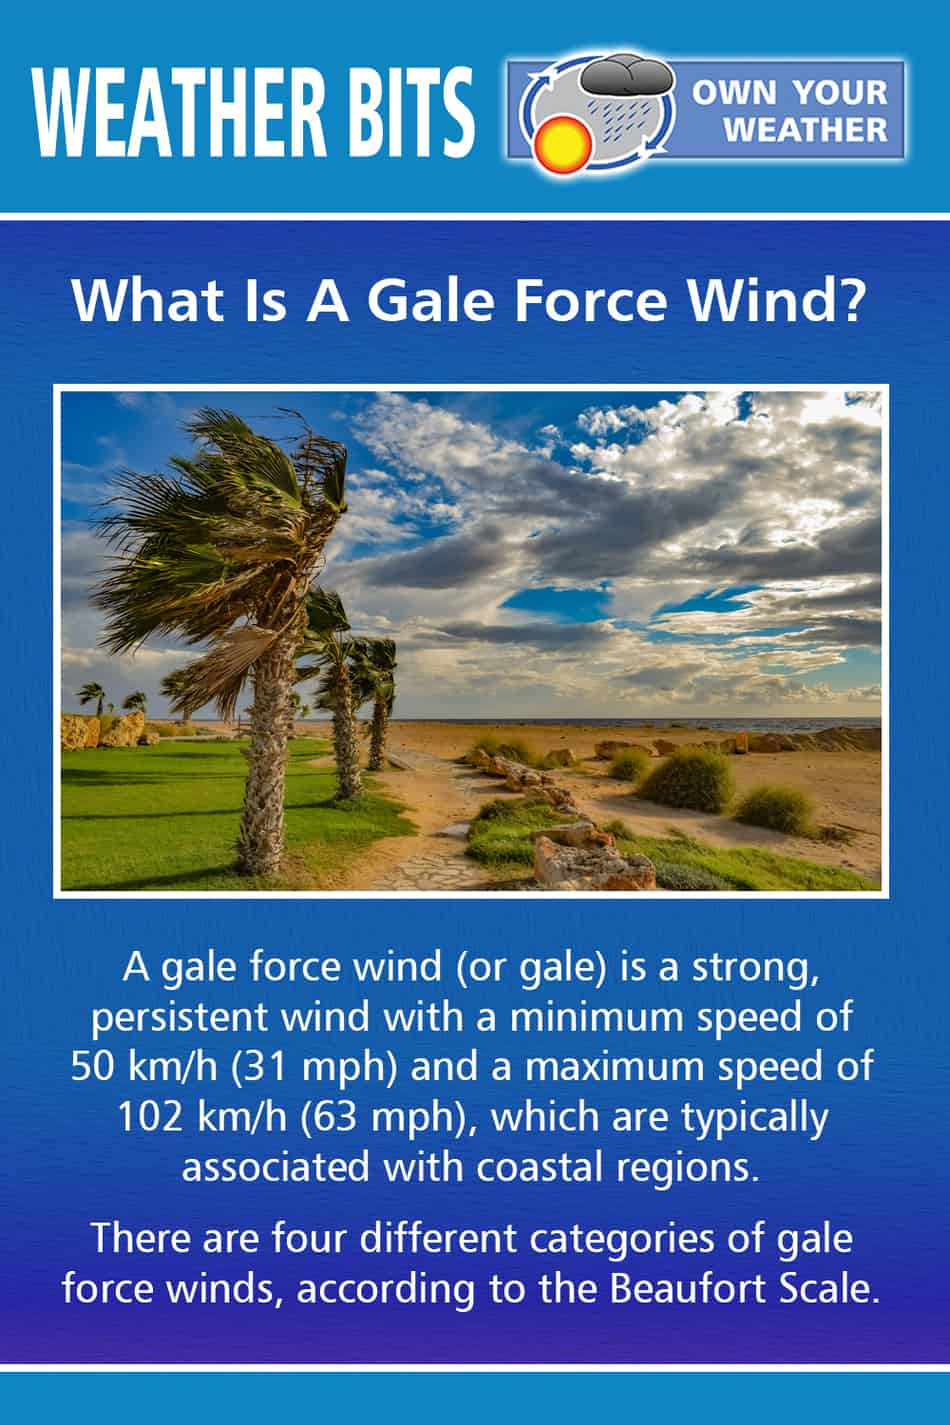 What Are Gale Force Winds